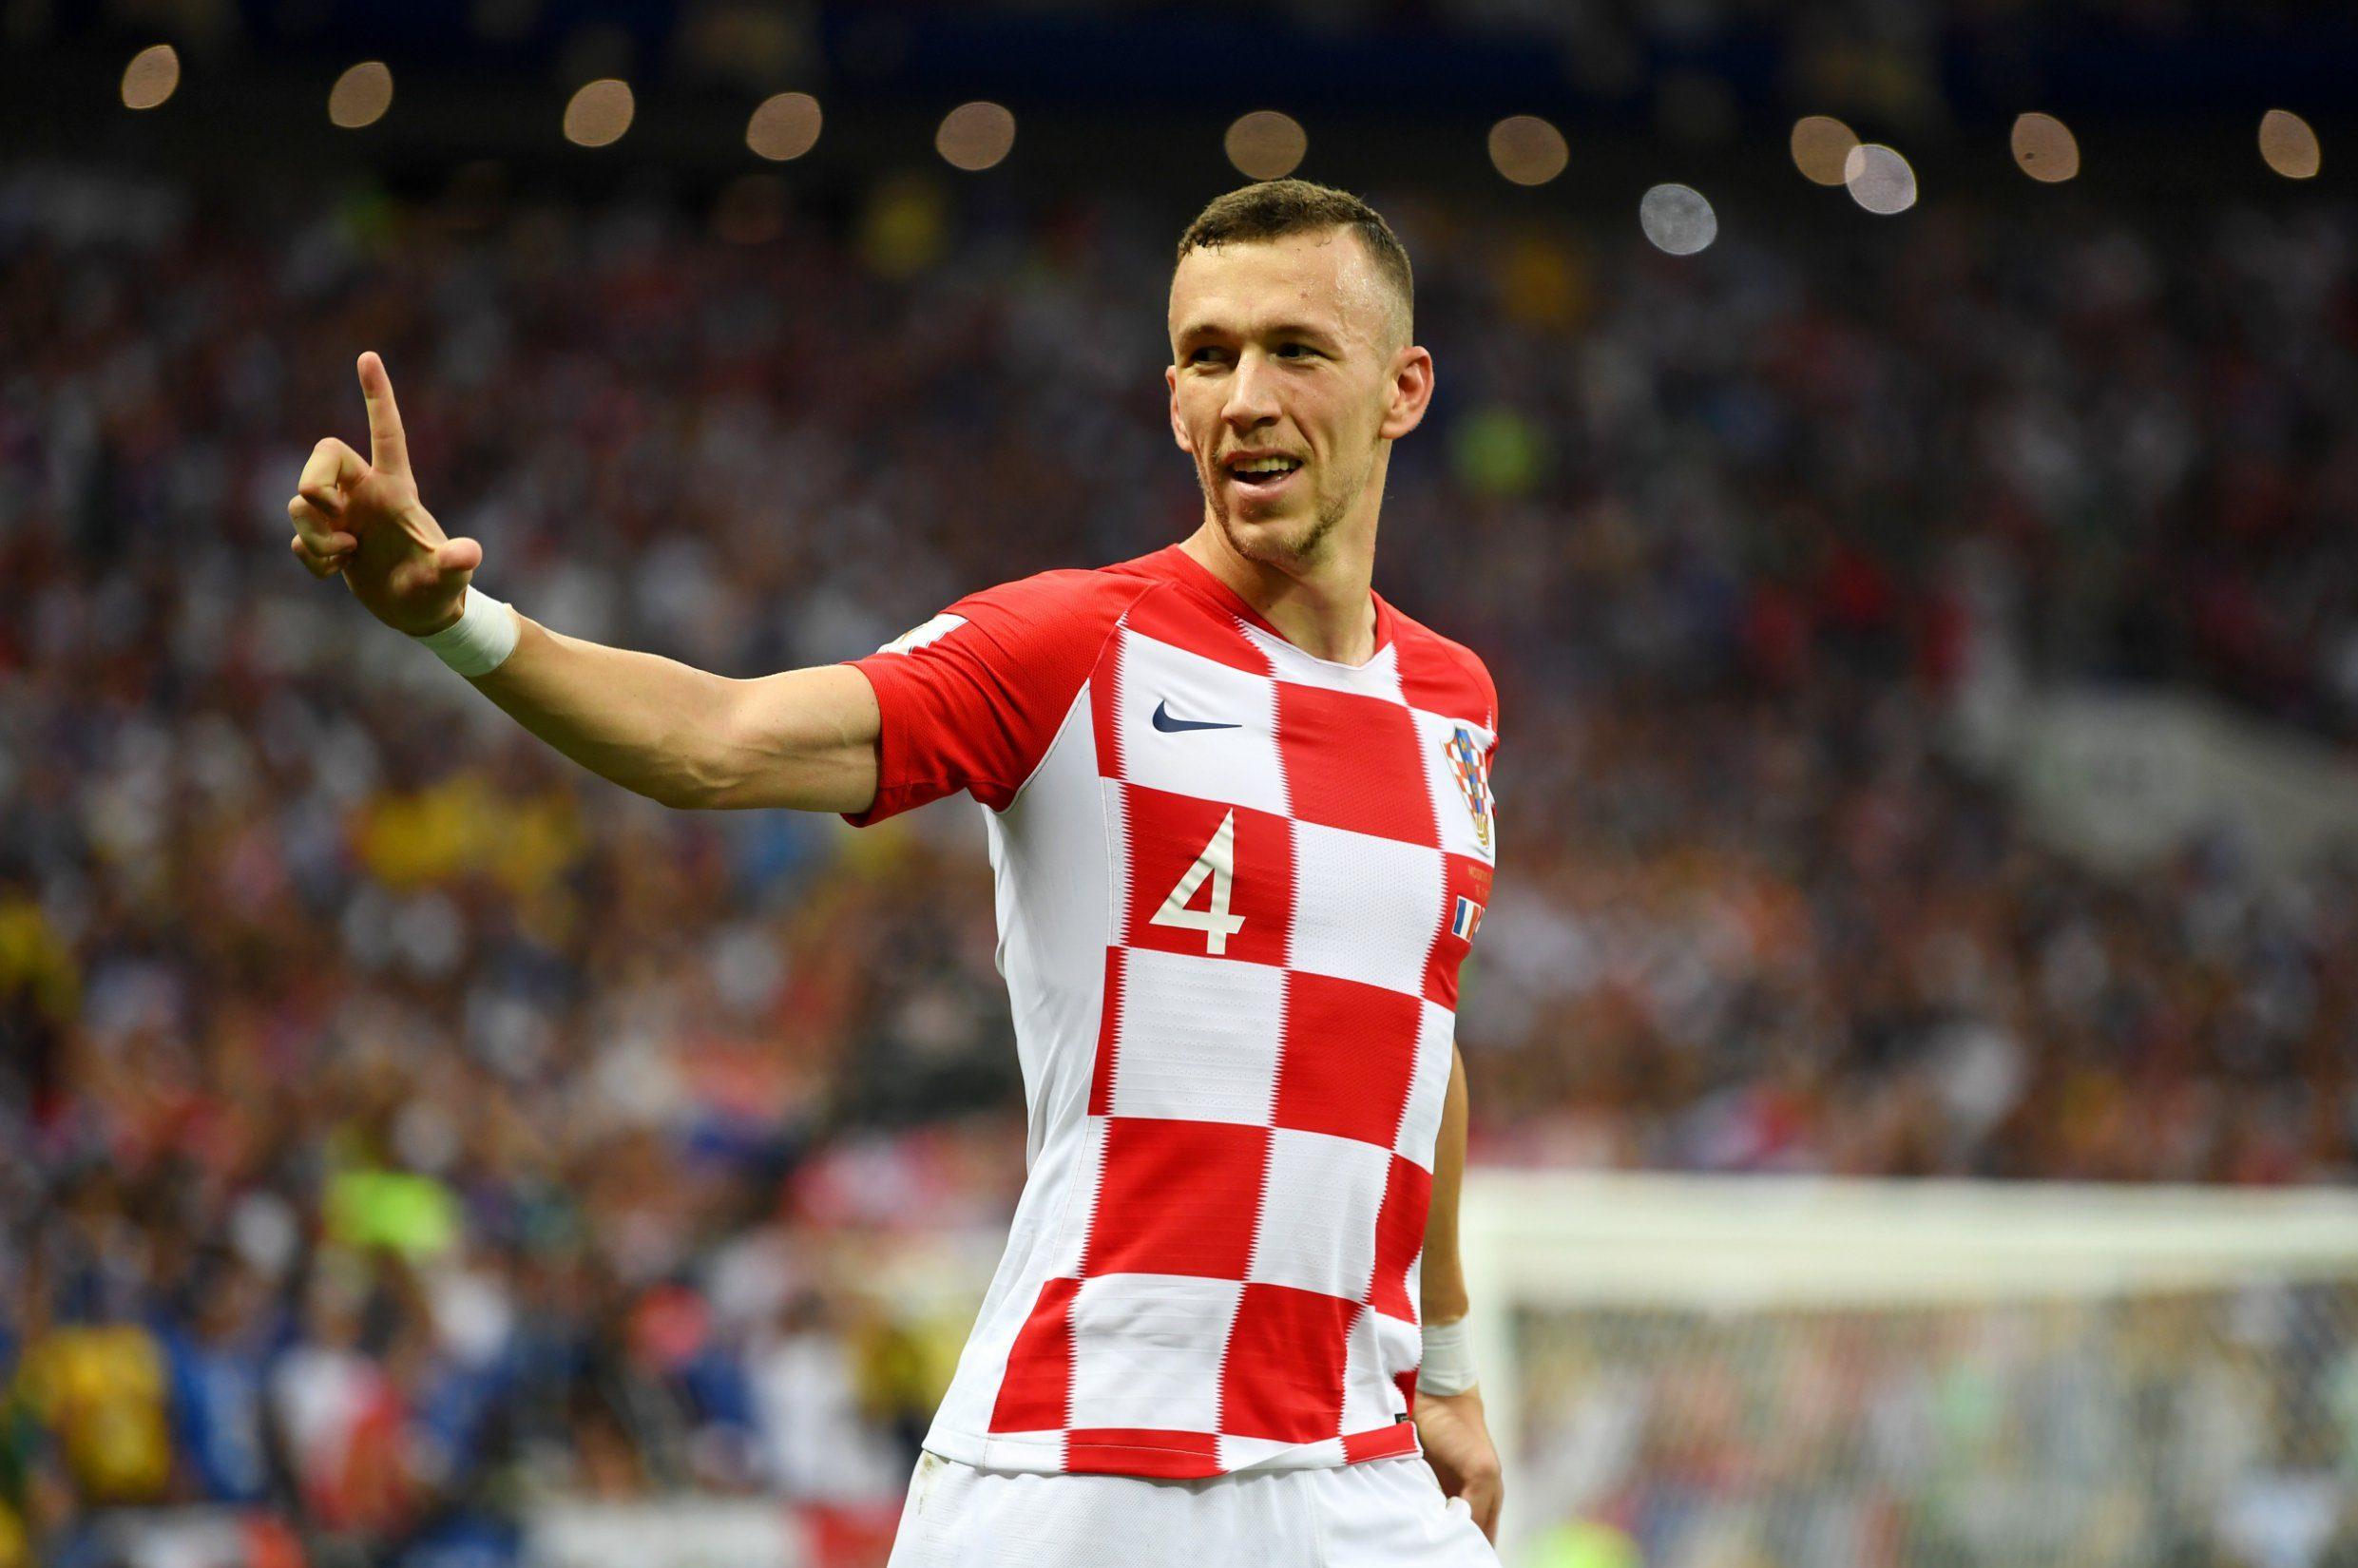 Manchester United transfer target Ivan Perisic not expressed desire to leave, says Inter boss